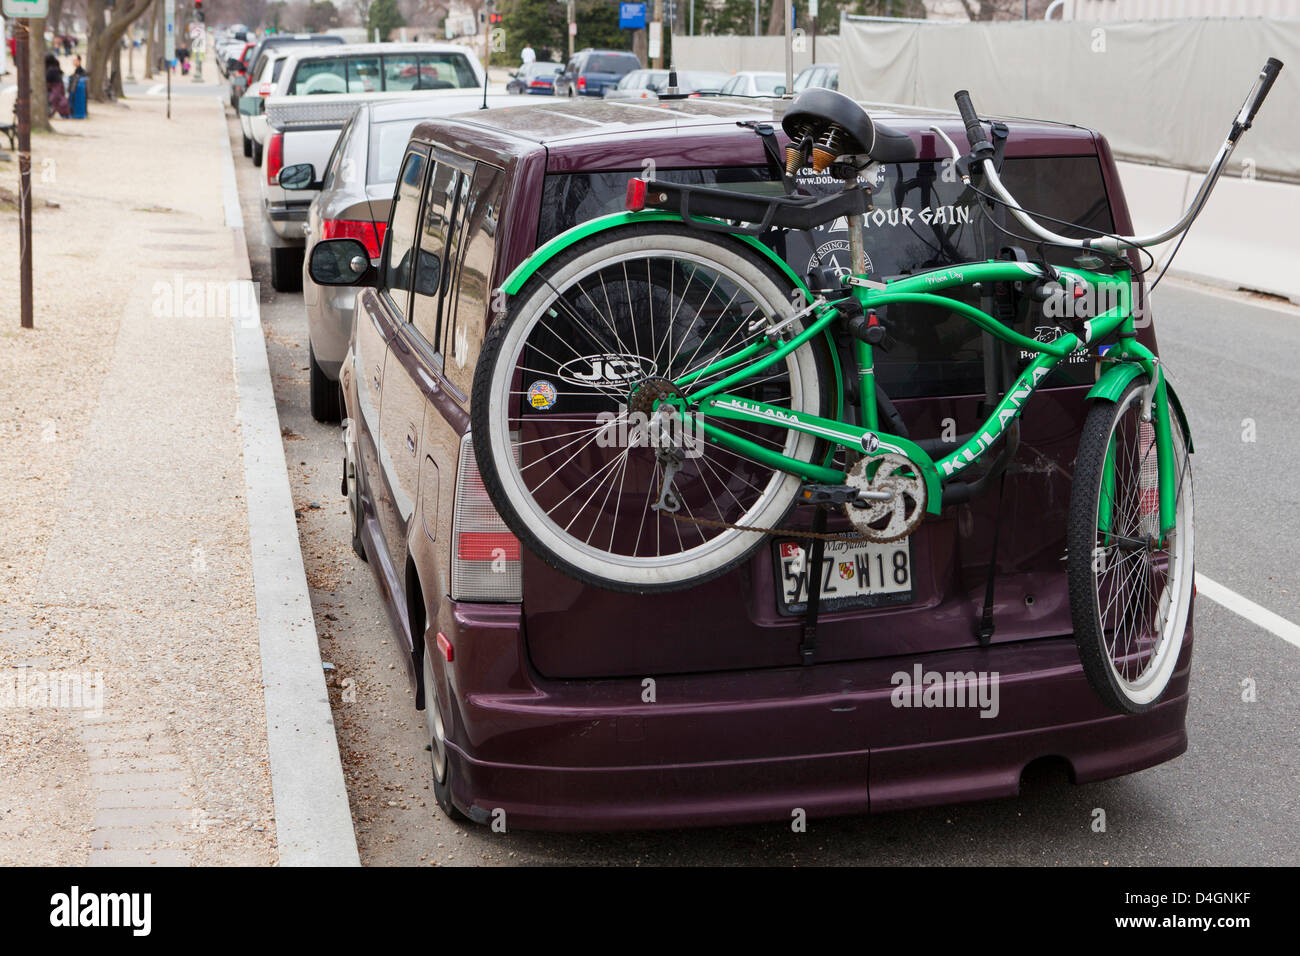 Bicycles on rear mounted bike rack - USA - Stock Image